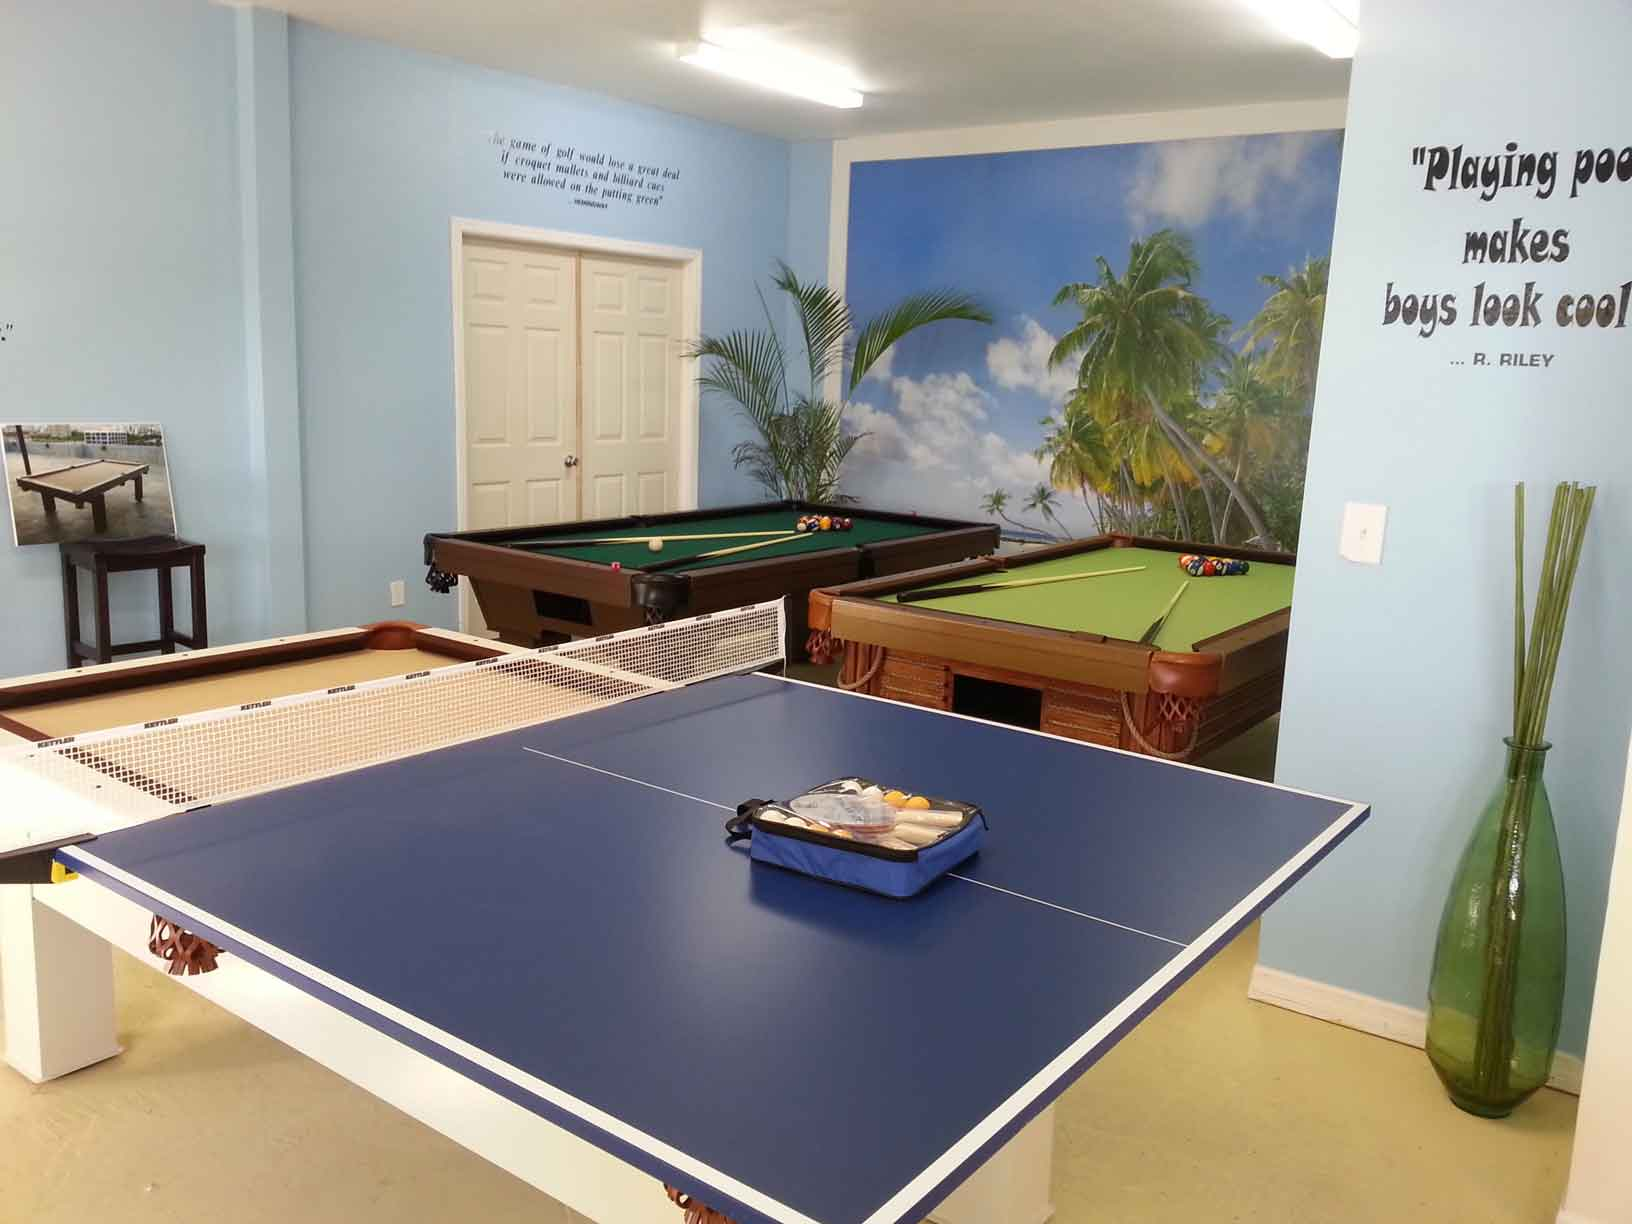 Assortment of outdoor pool tables and sample table tennis conversion top in R&R Outdoors All Weather Billiard showroom